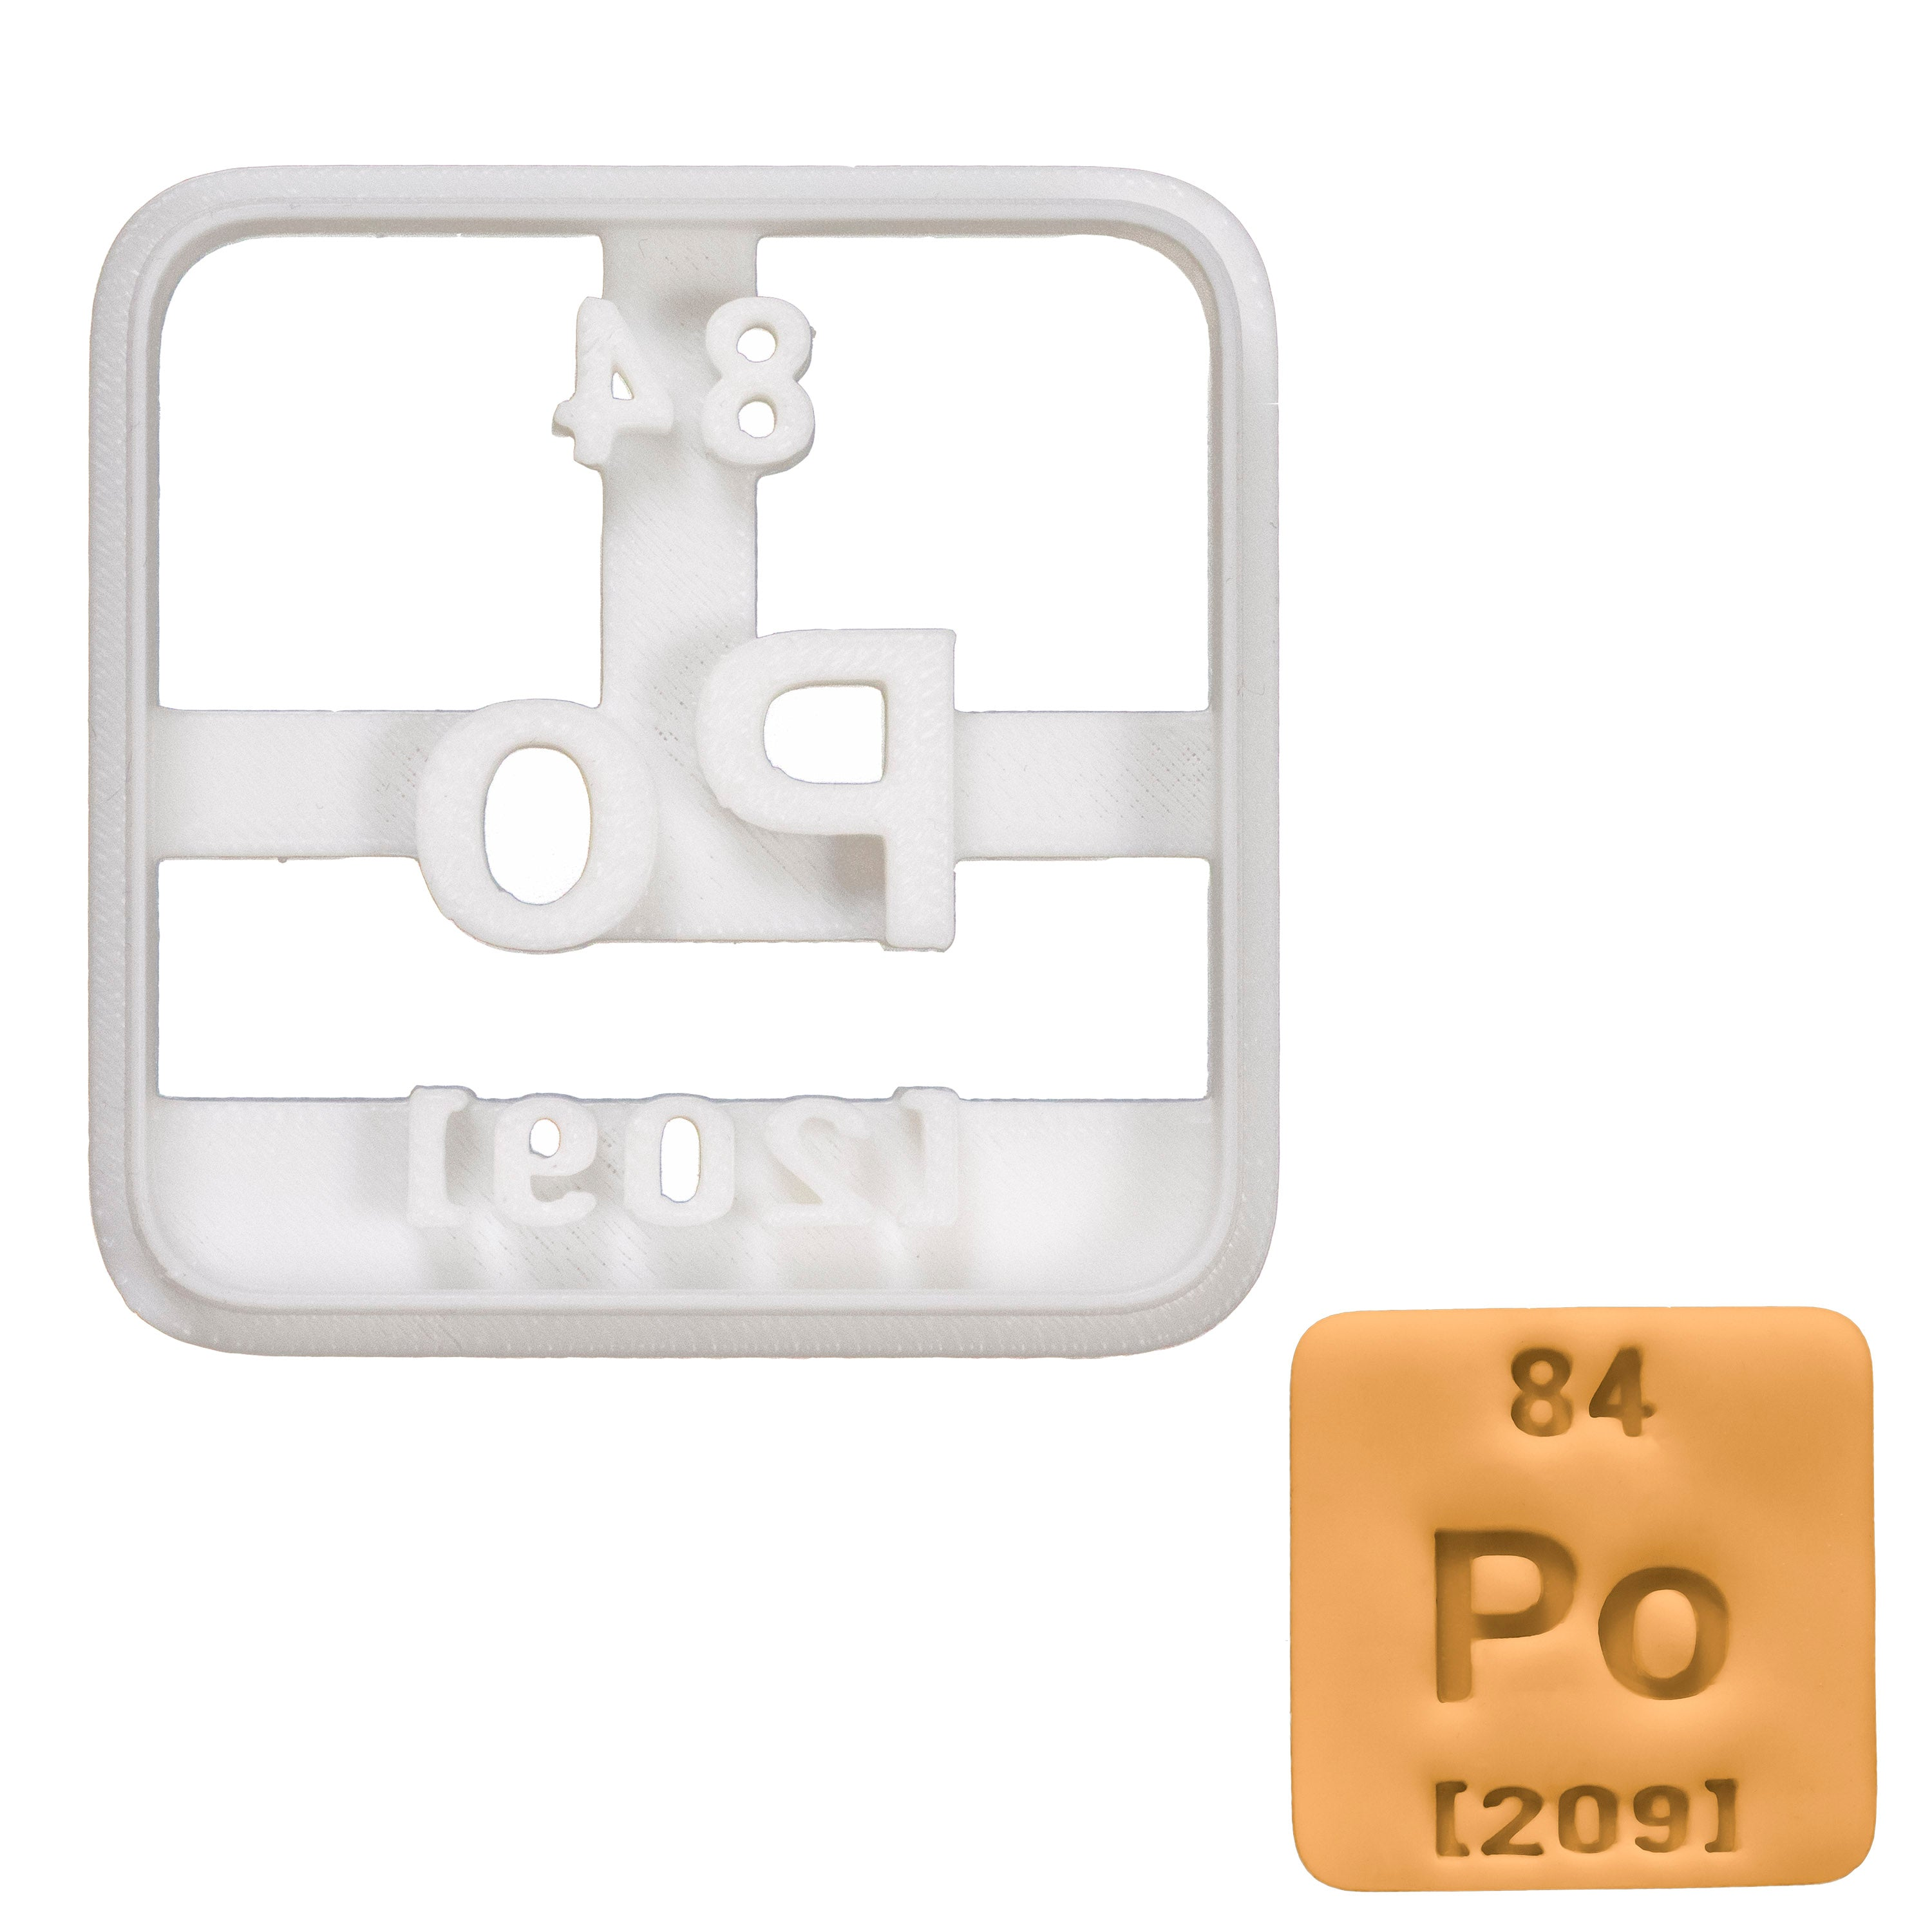 Periodic Table Element Polonium Cookie Cutter